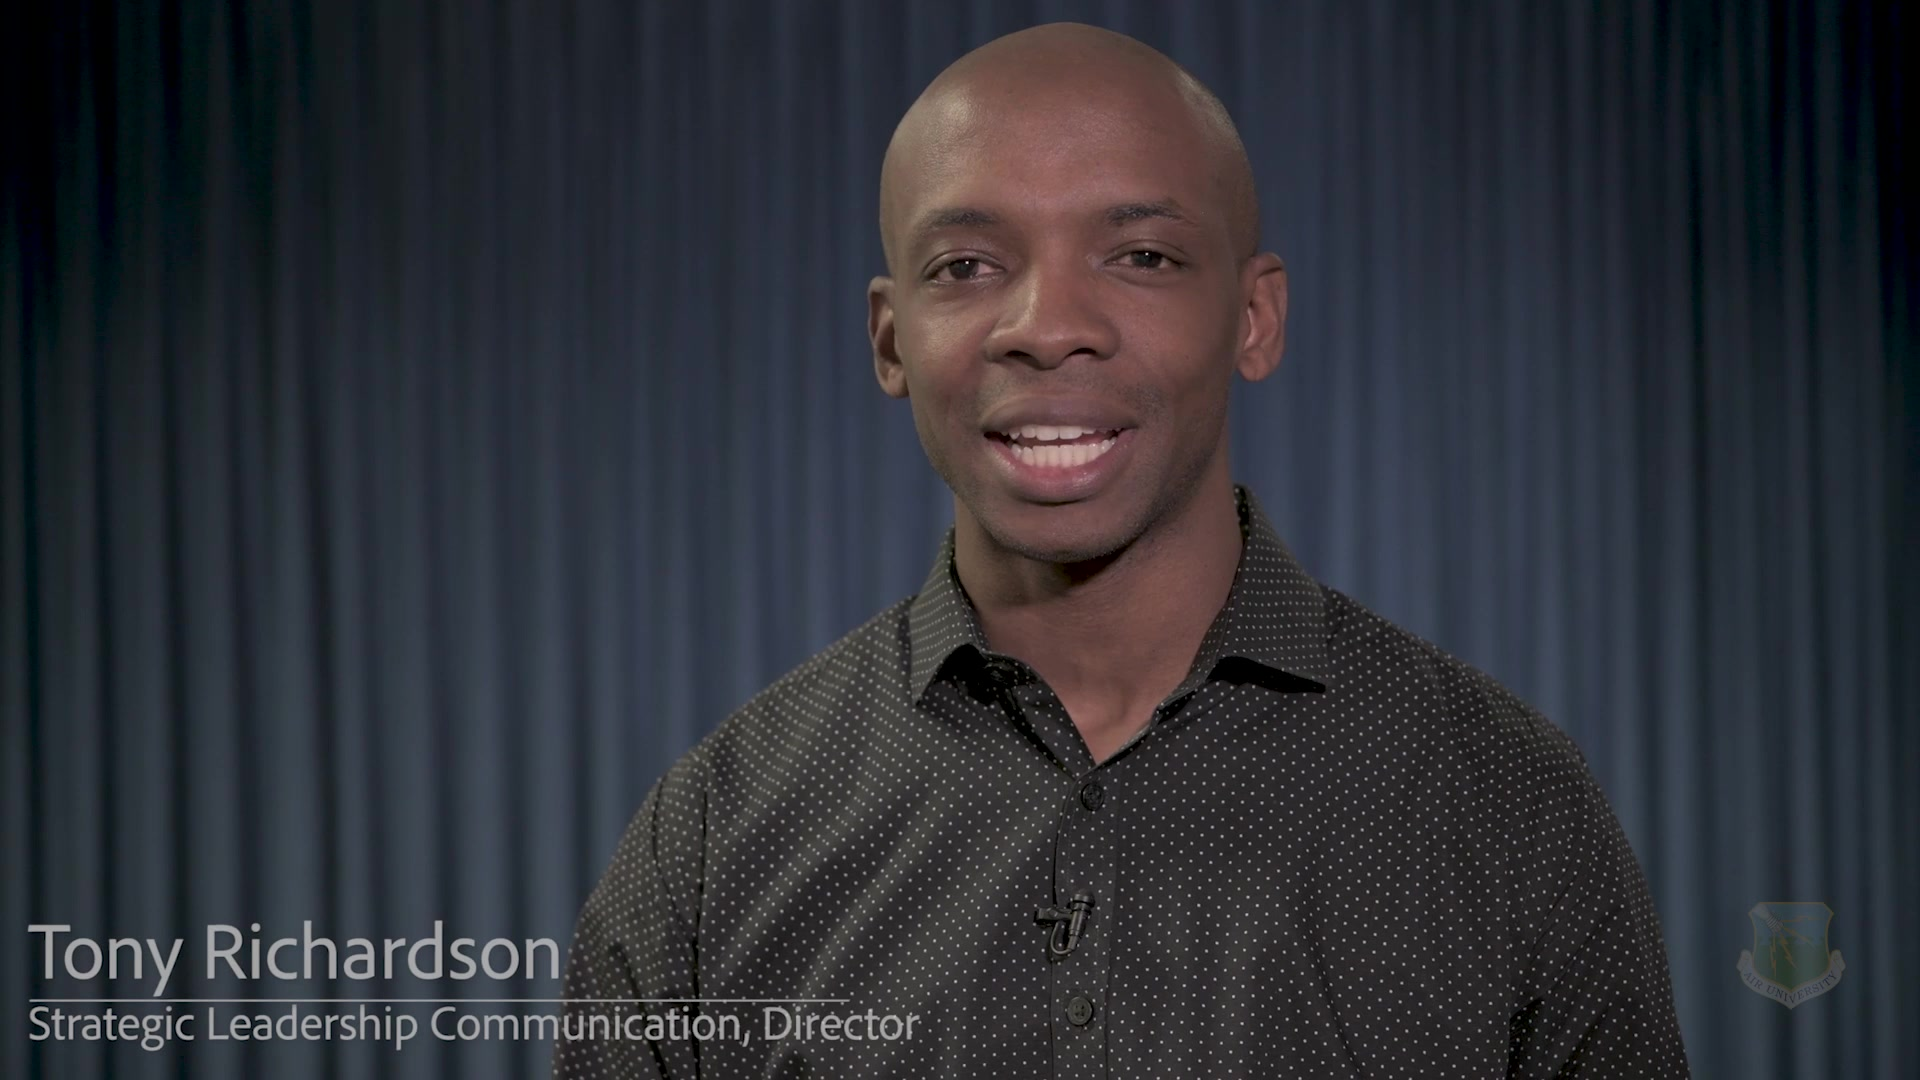 In this 5-part series, the Director of Strategic Leadership Communication, Tony Richardson, discusses his 4 C's of leadership; care, communicate, connect, and commit.